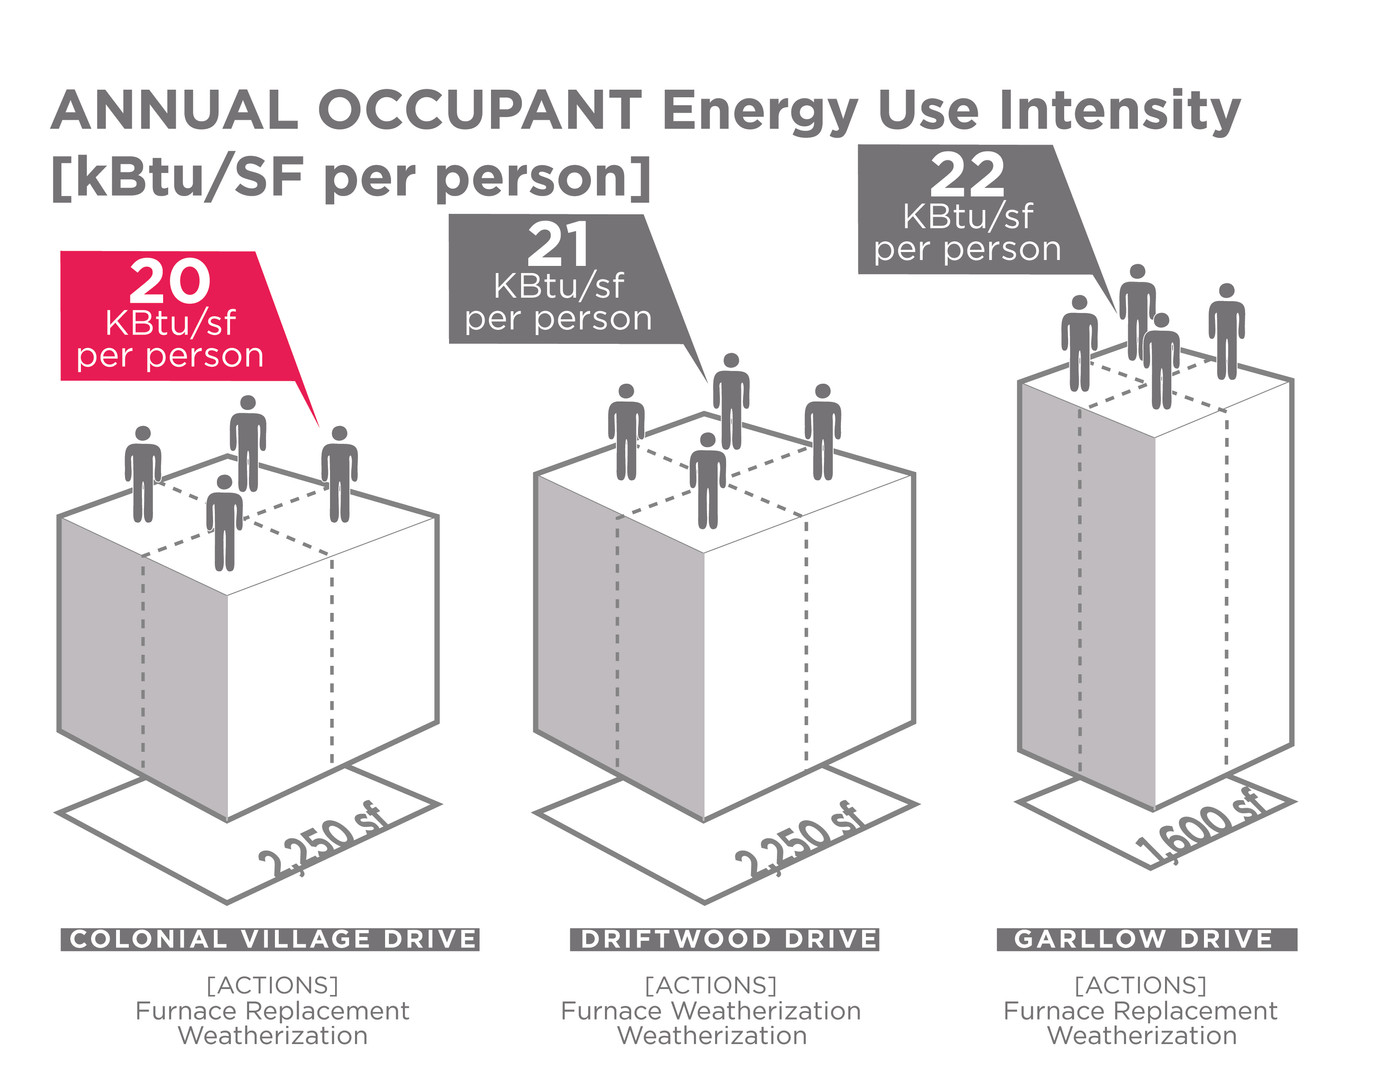 Energy use intensity by occupant